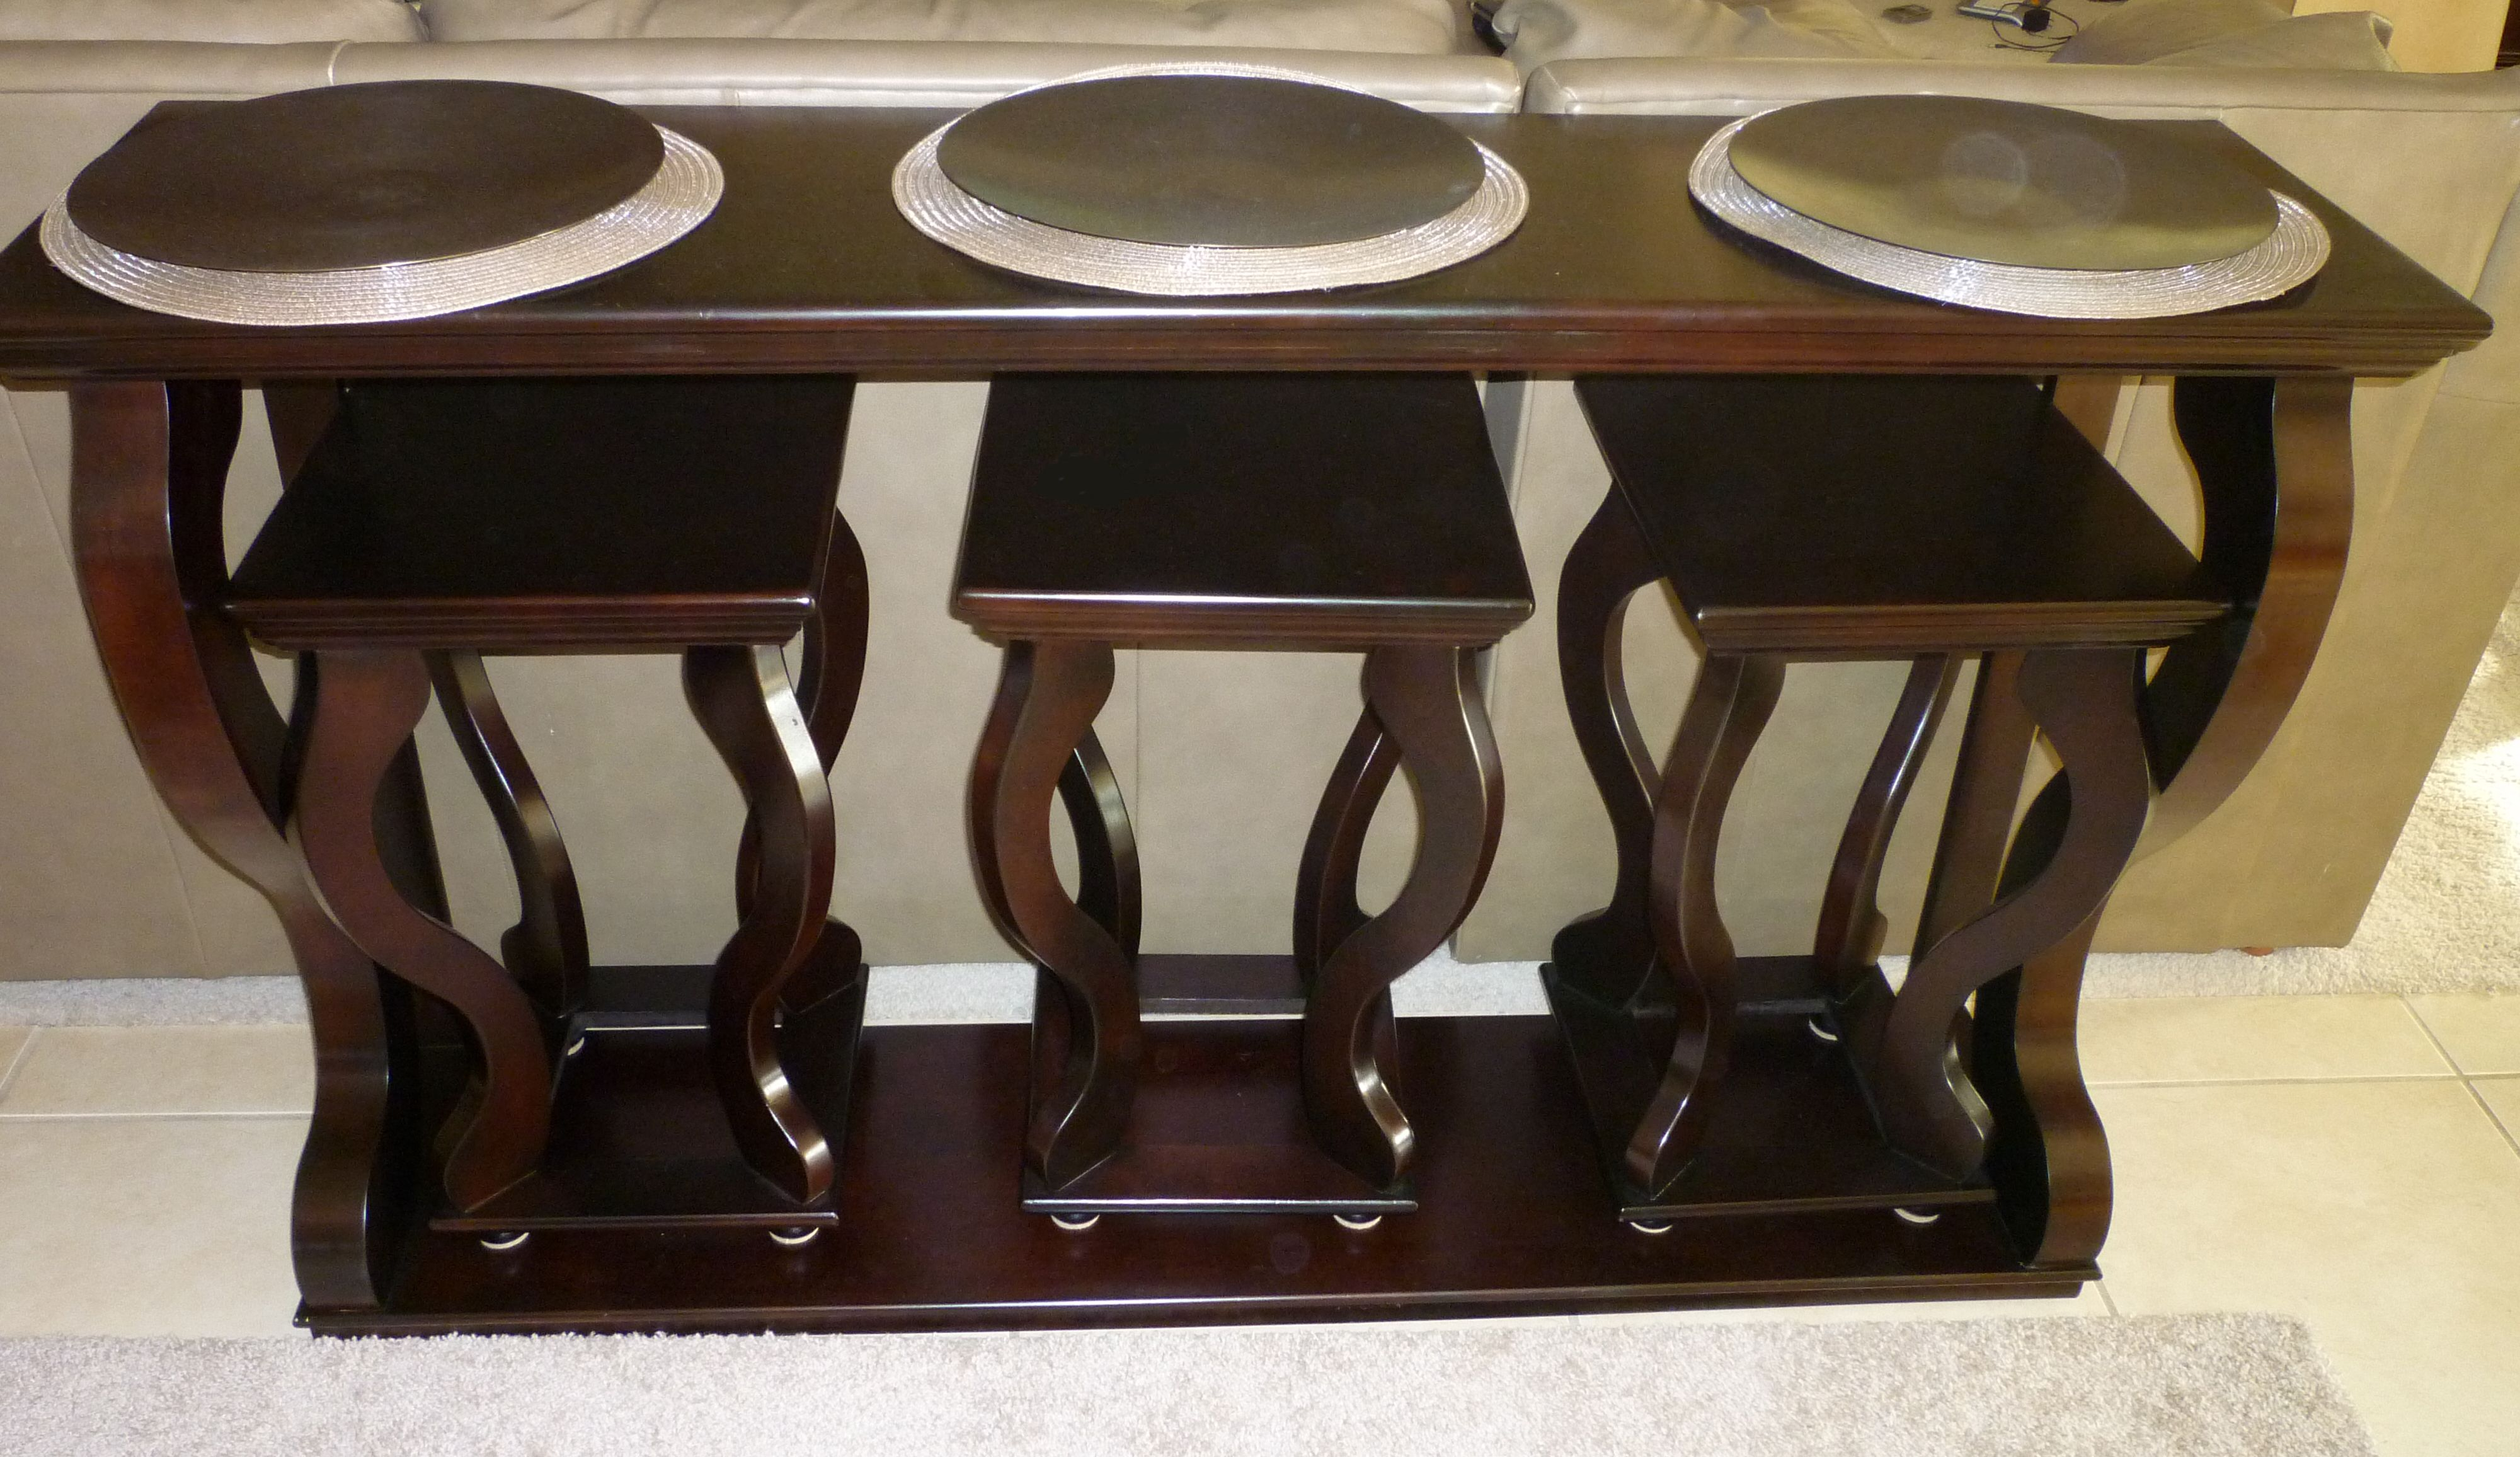 Kitchen Bar Table And Stools 17 Best Images About Bar Behind Couch On Pinterest Bar Behind